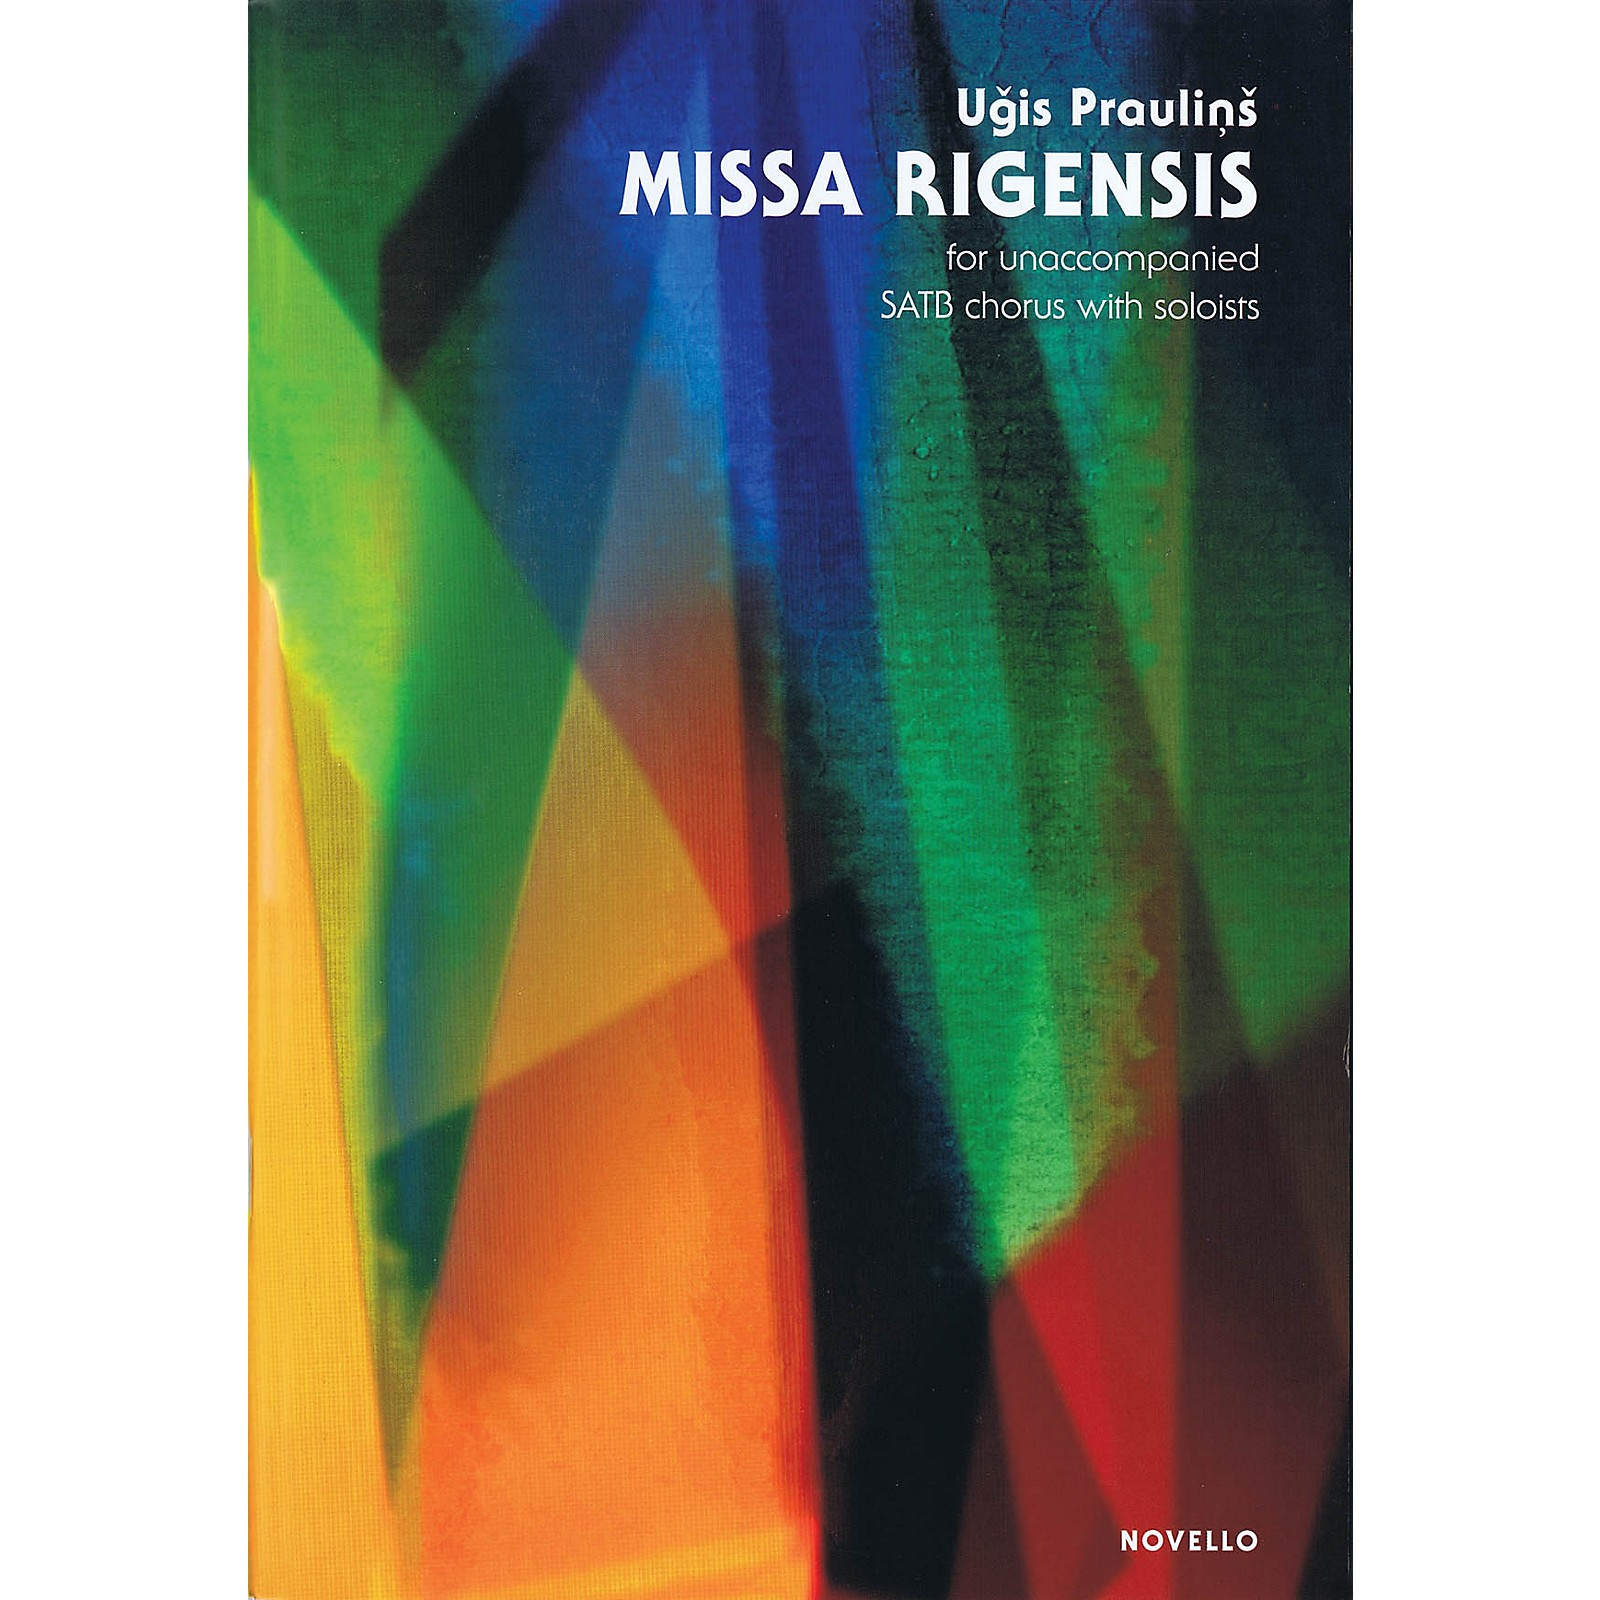 Novello Missa Rigensis (Unaccompanied SATB chorus with soloists) SATB Composed by Ugis Praulins